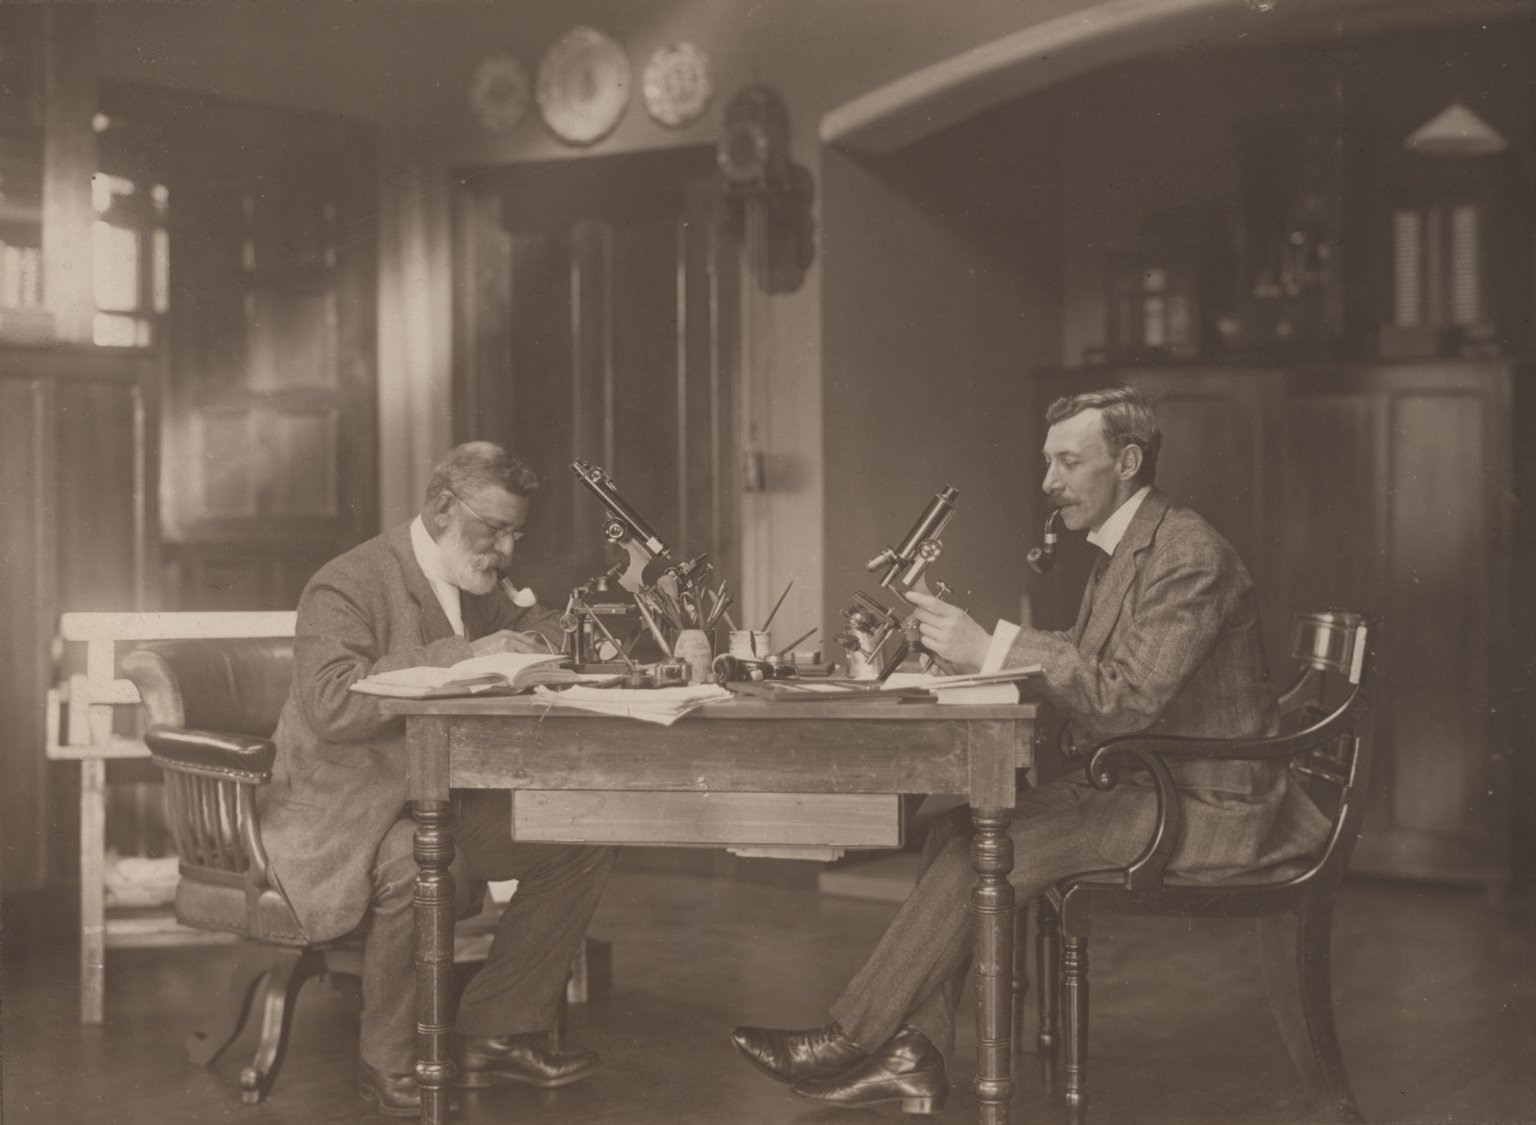 Doctor R. Kingston F.R.S. and Professor D.T. Gwynne-Vaughan